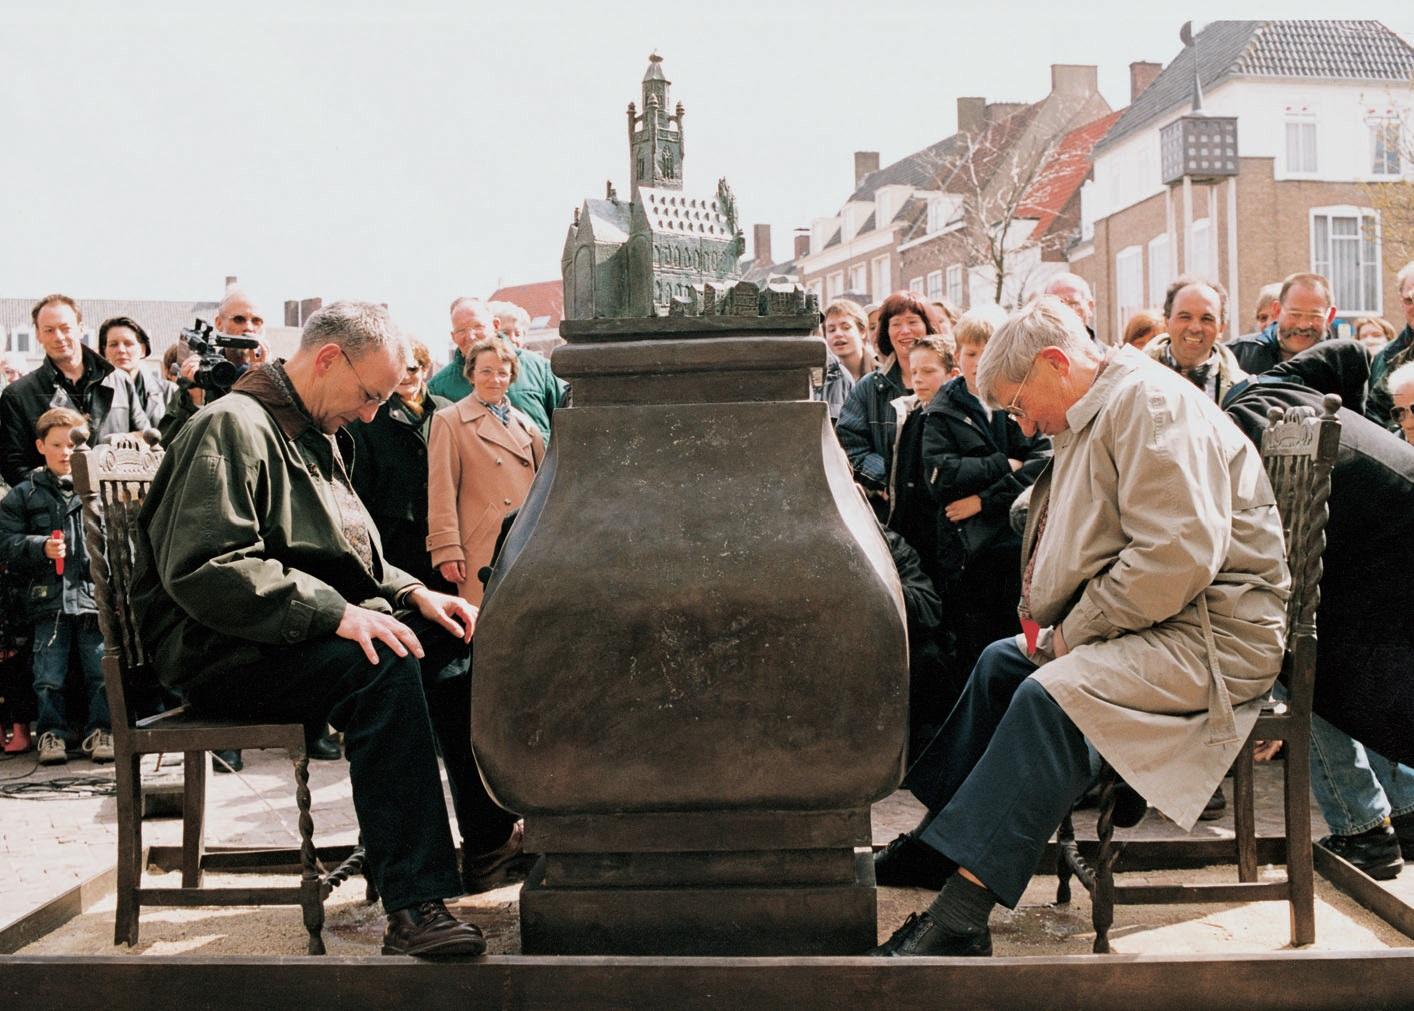 Installation-view.-Vernisage-in-front-of-the-Rathaus-Middleburg-2000-Photo-by-Kees-Brandenburg.jpg